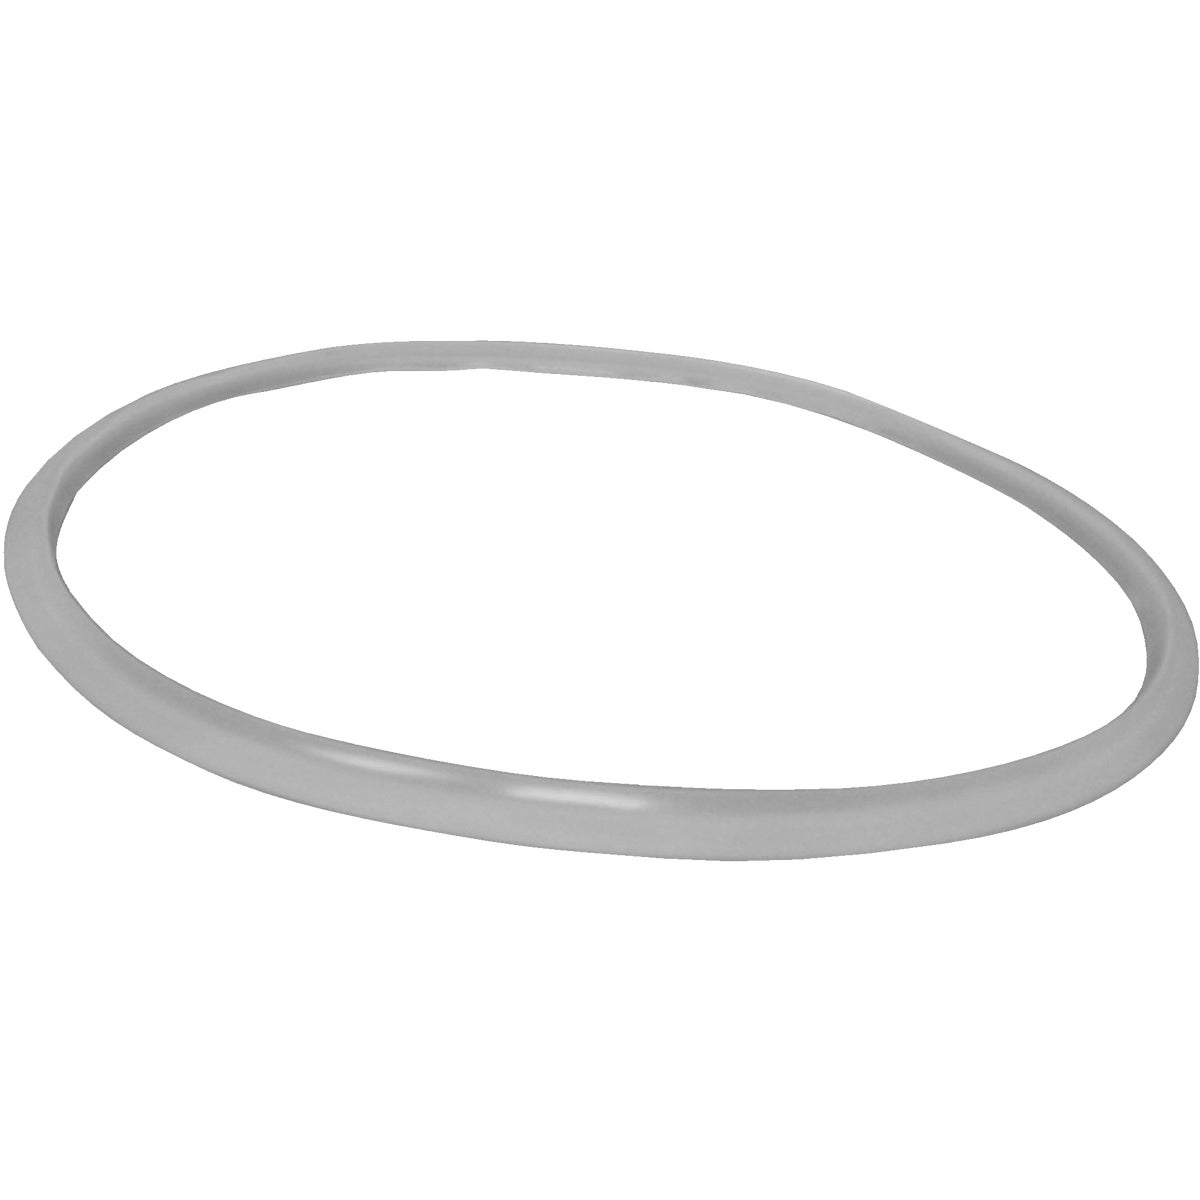 16-22QT REPLACE GASKET - 92516 by T Fal Wearever